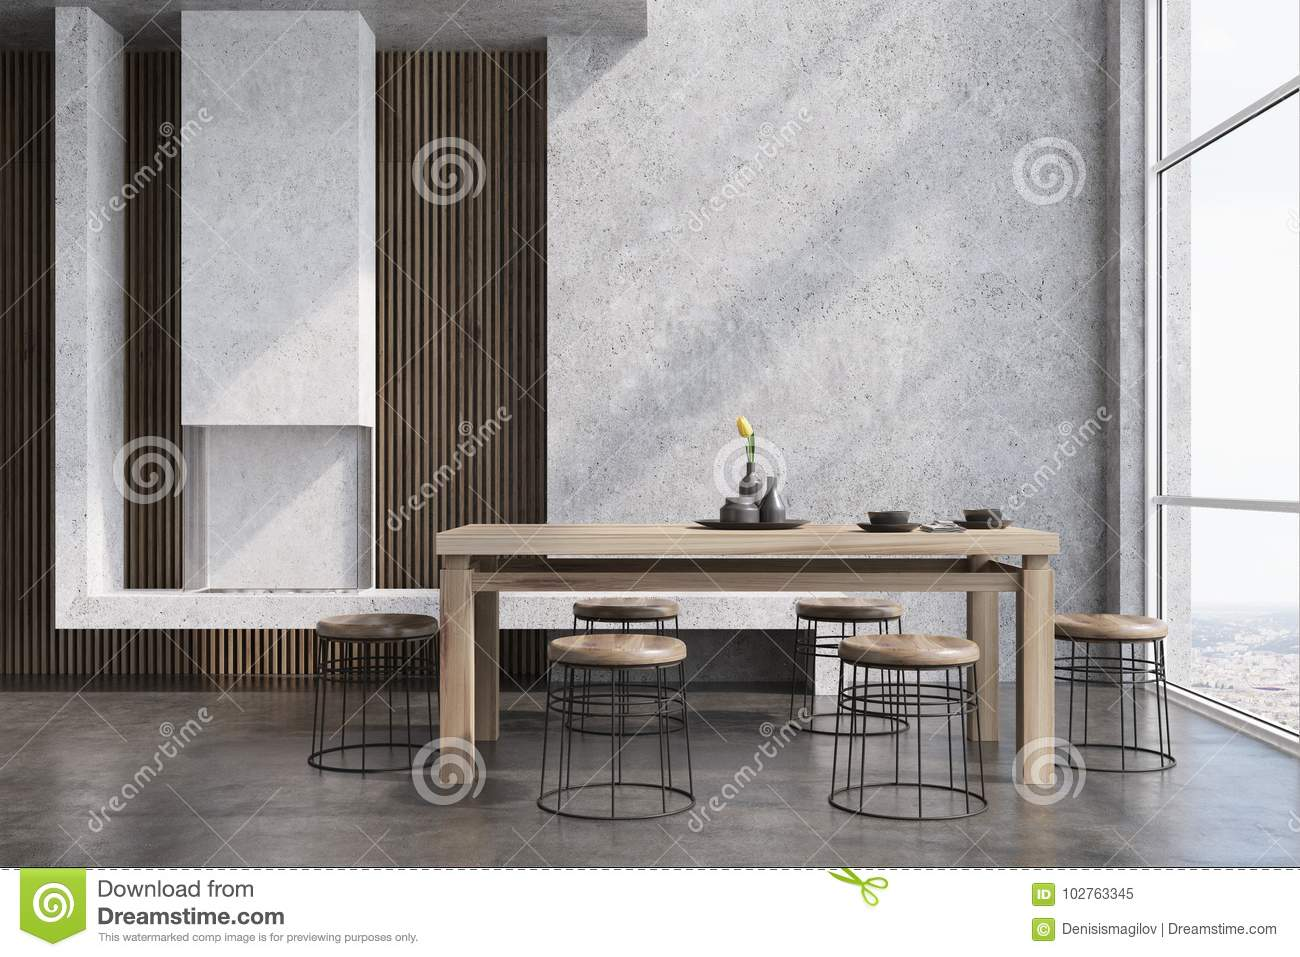 Modern Dining Room Interior With Concrete And Wooden Walls A Table Round Chairs Near It Loft Window Fireplace 3d Rendering Mock Up